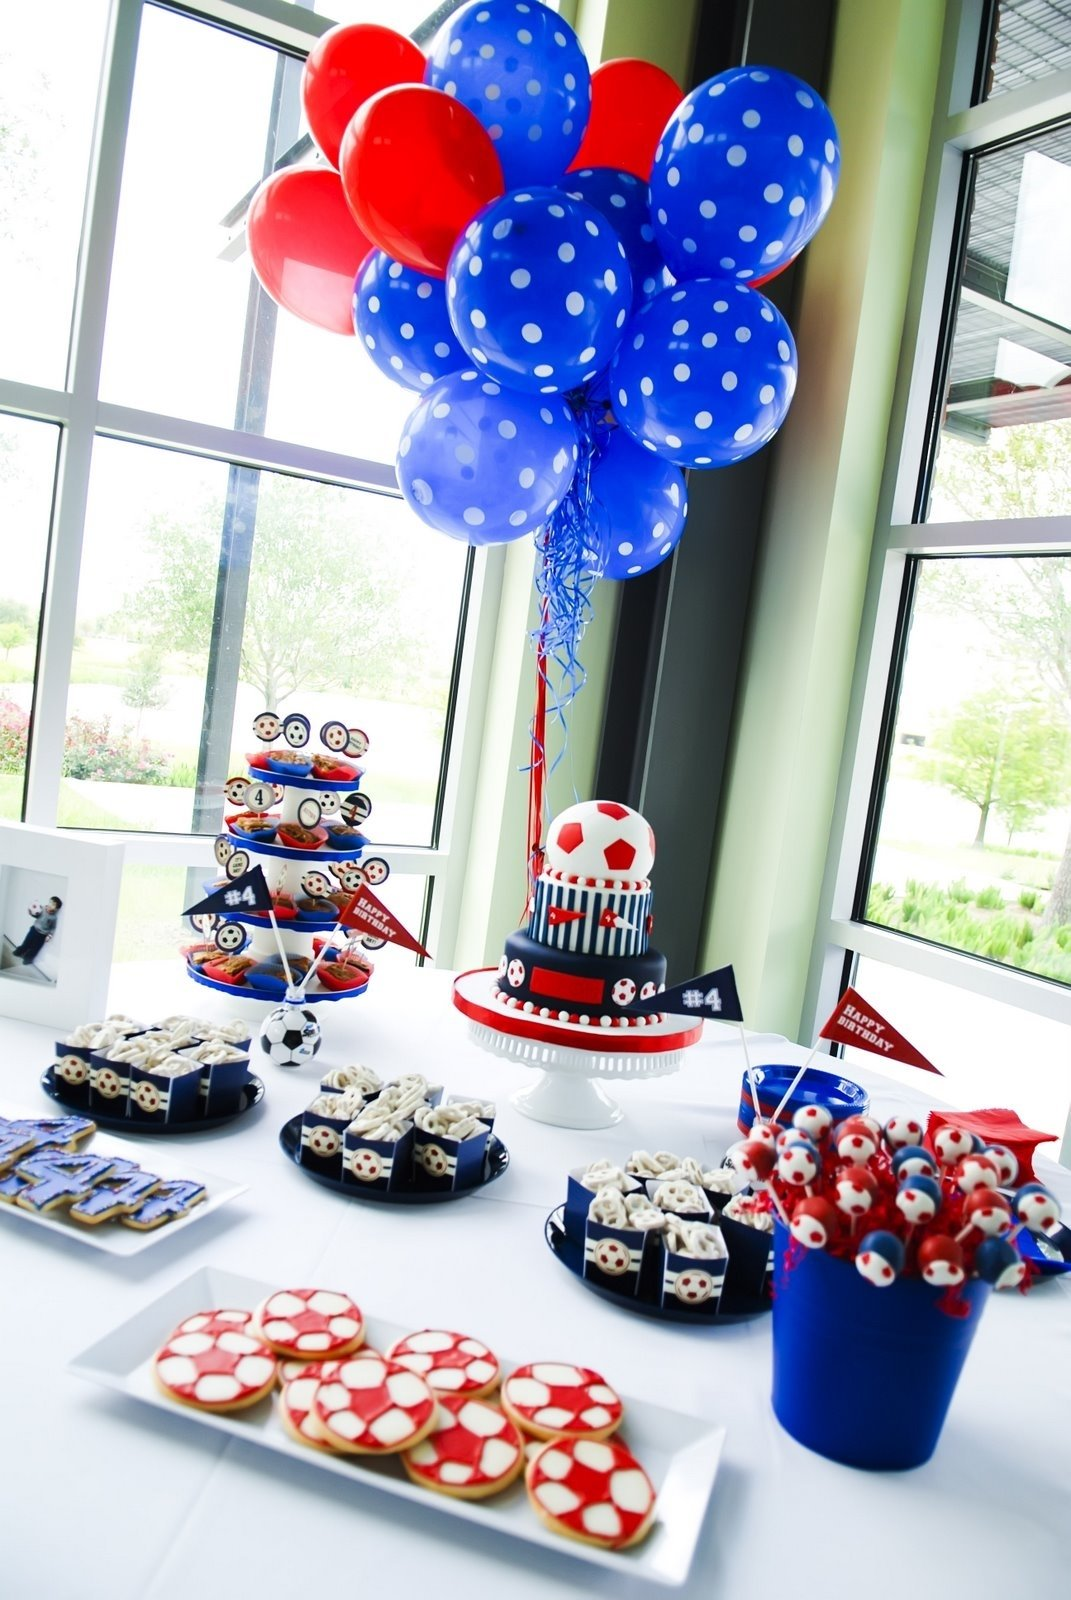 10 Awesome Two Year Old Boy Birthday Party Ideas 50 awesome boys birthday party ideas i heart naptime 67 2020